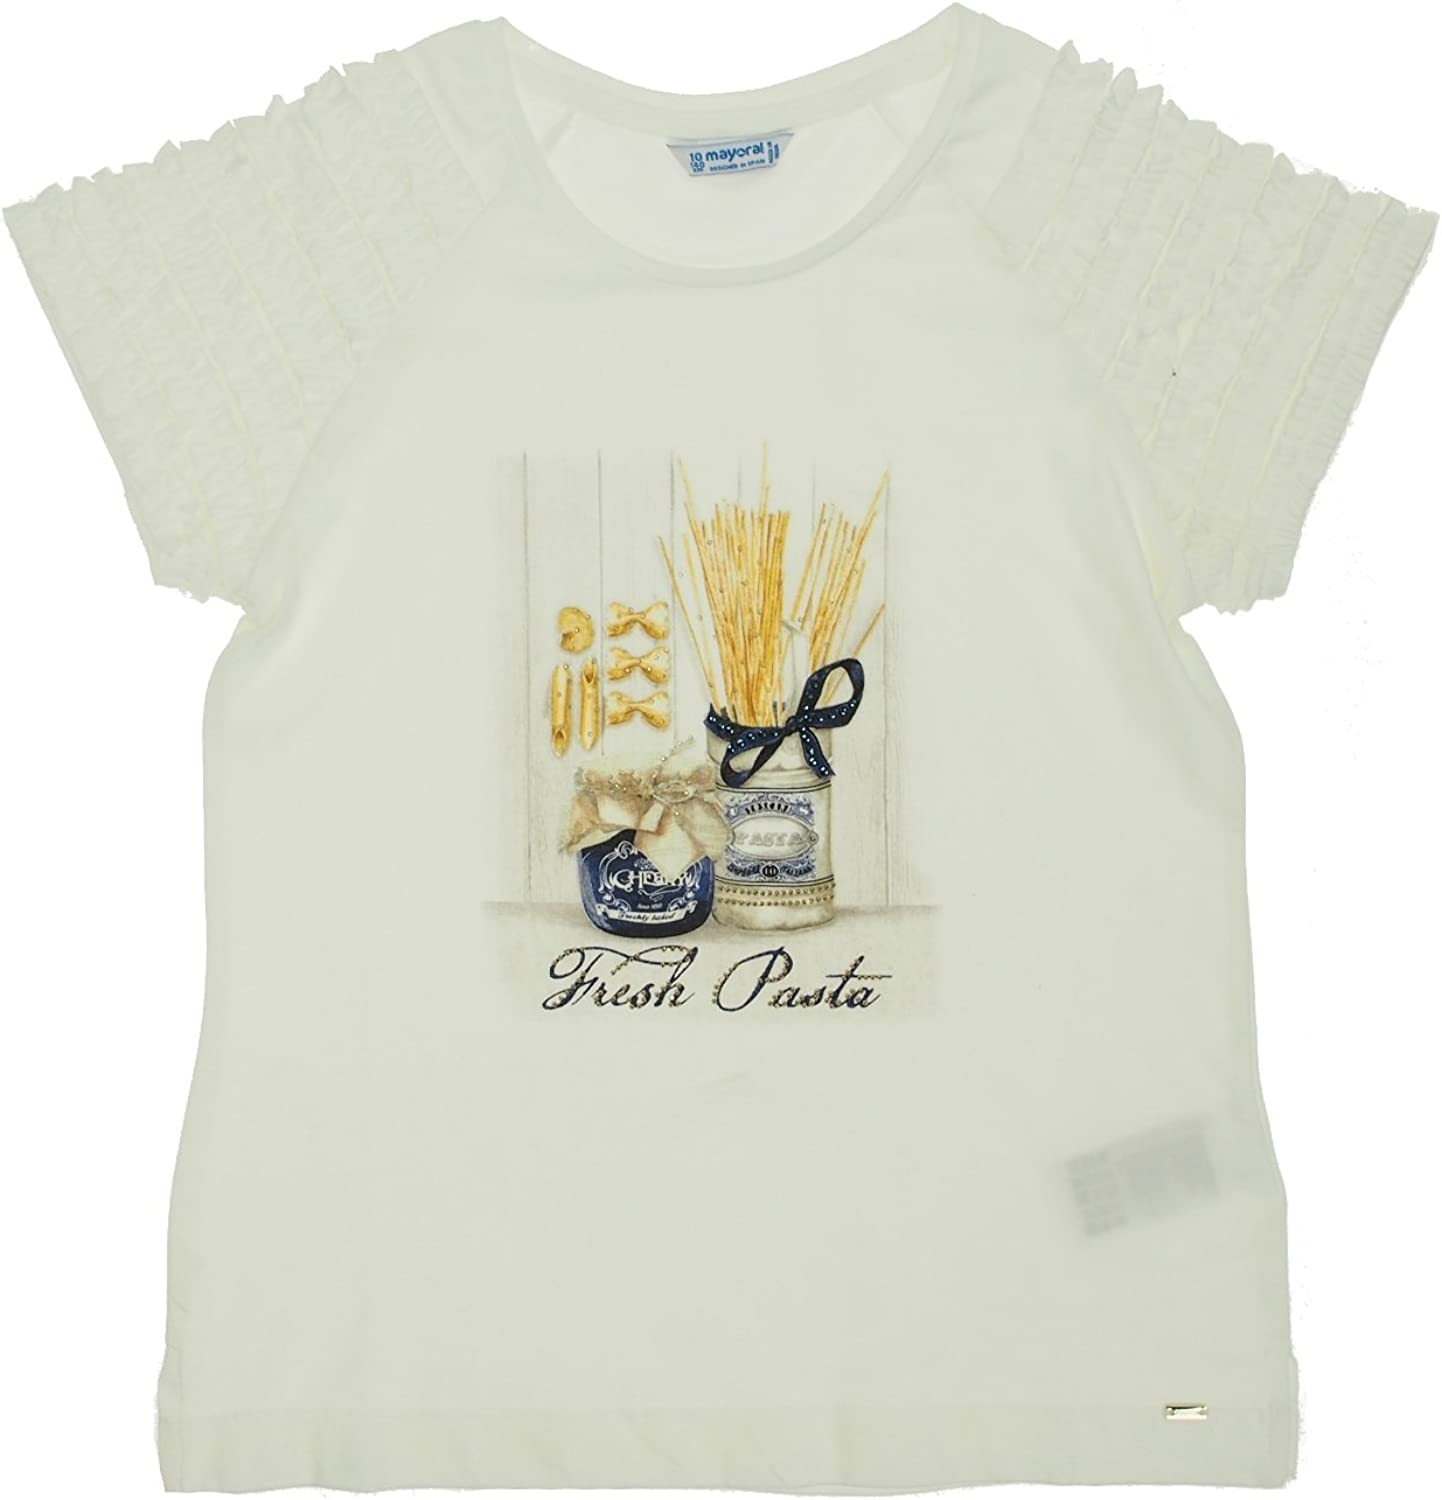 6026 S//s t-Shirt for Girls Mayoral Navy